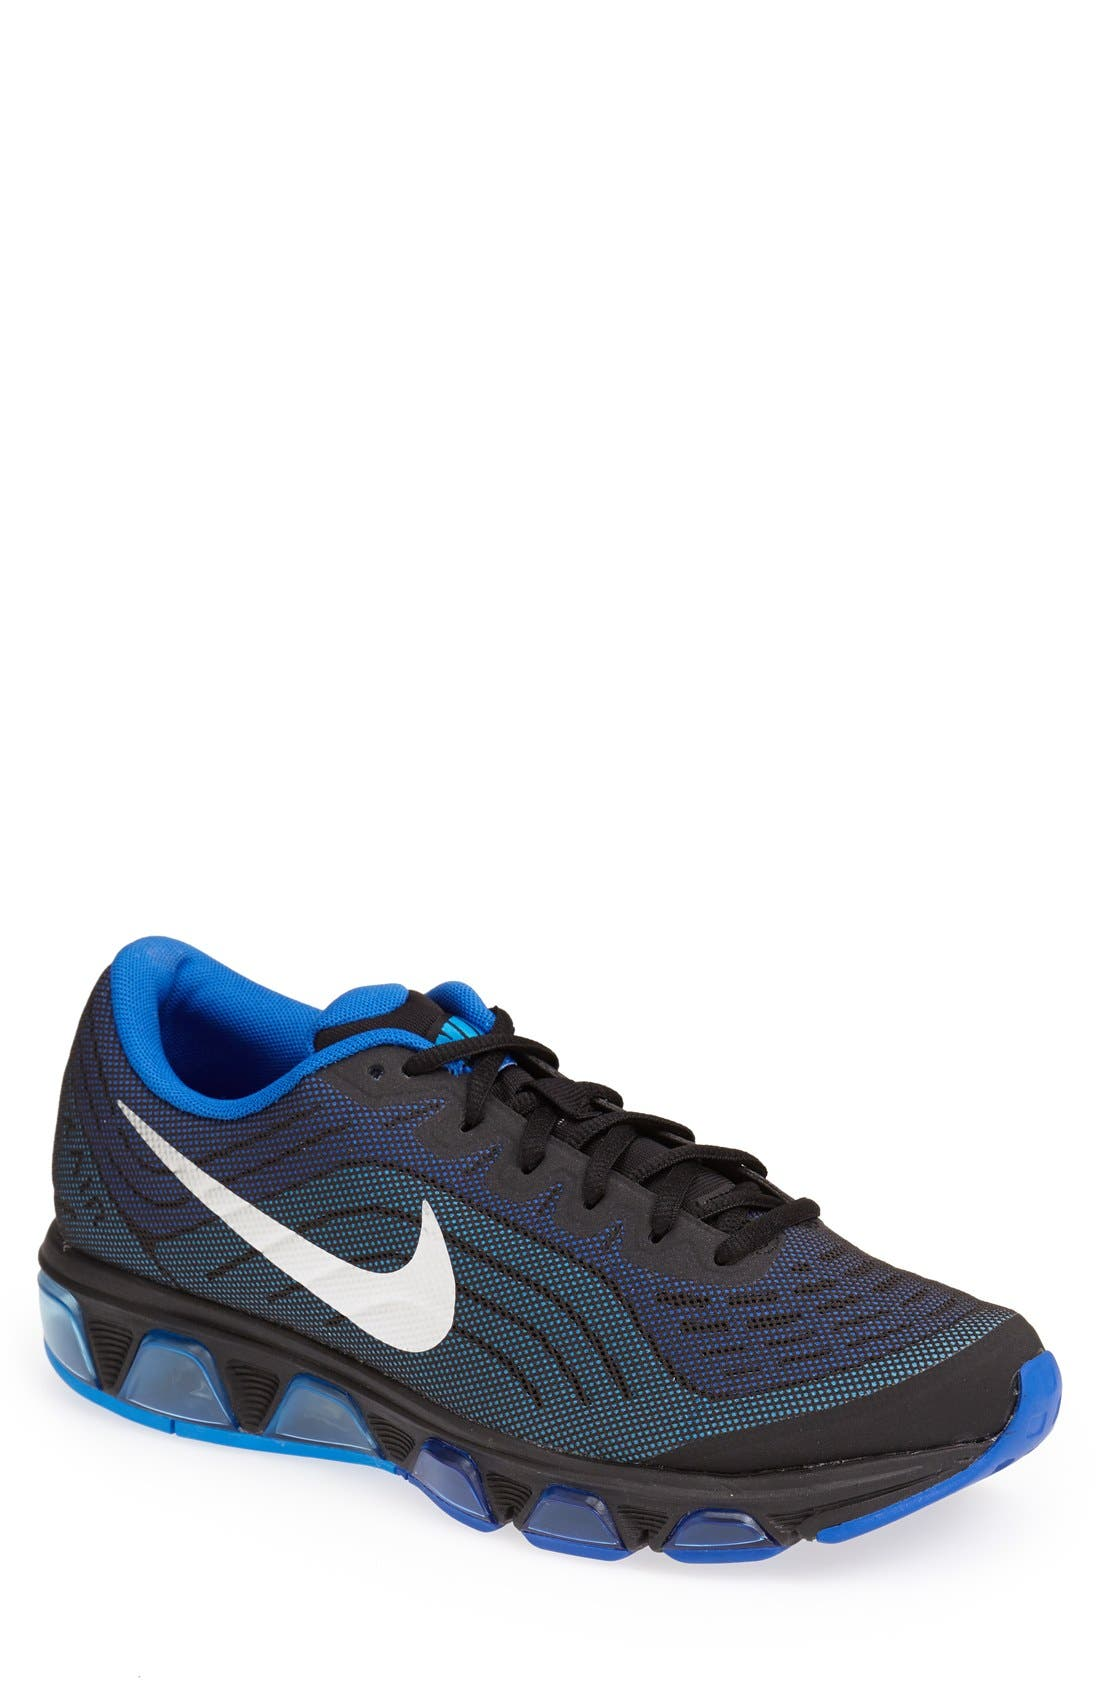 a86c74eb989a4e ... coupon code for main image nike air max tailwind 6 running shoe men  0cbd5 28cab